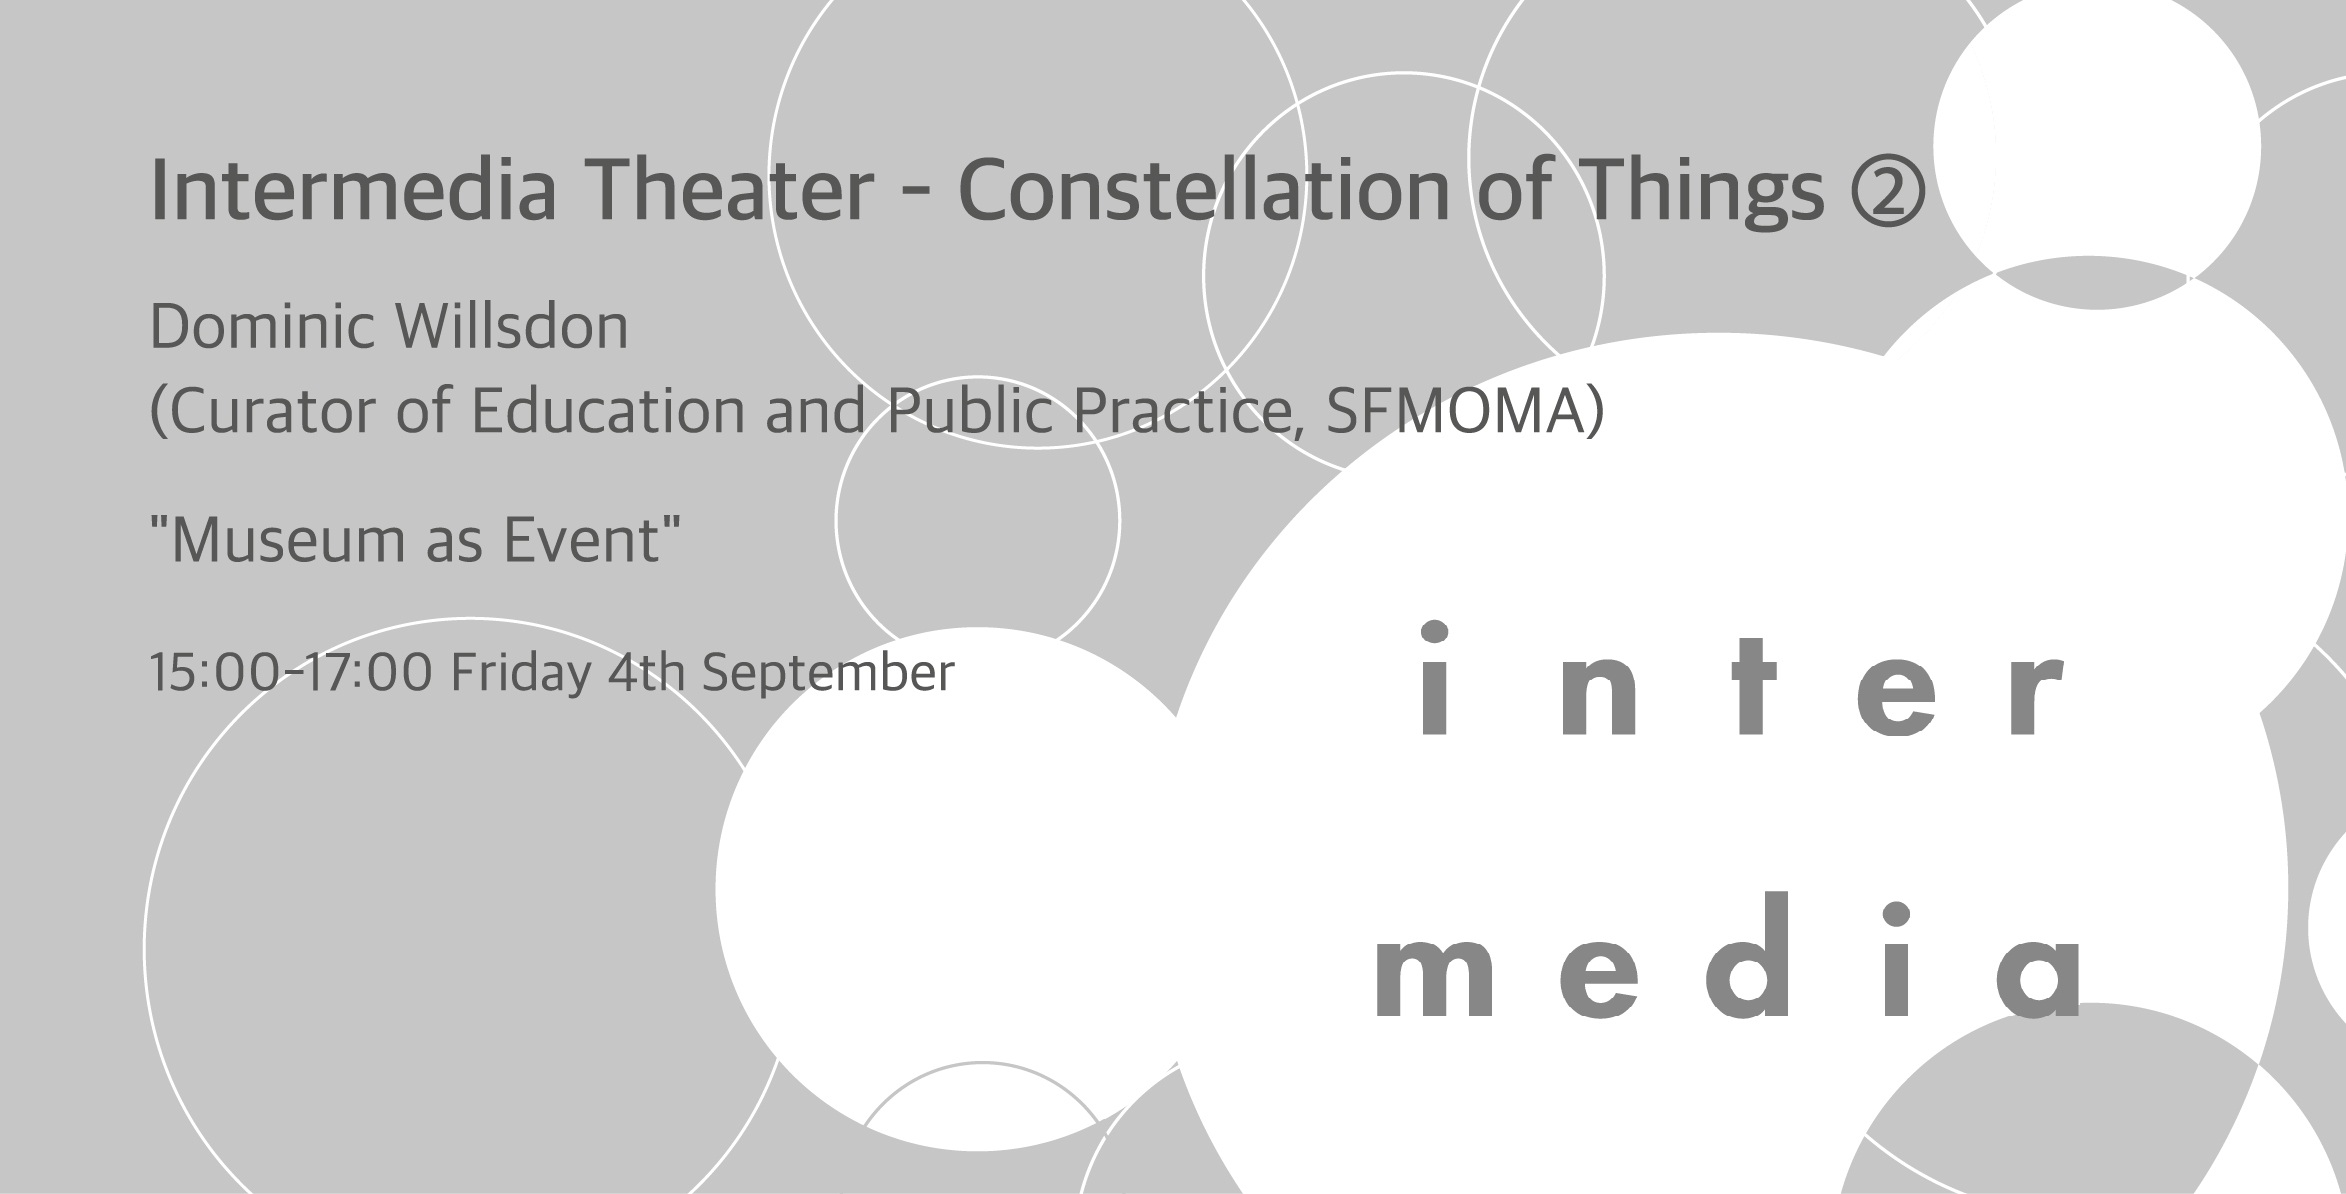 Intermedia Theater - Constellation of Things ②